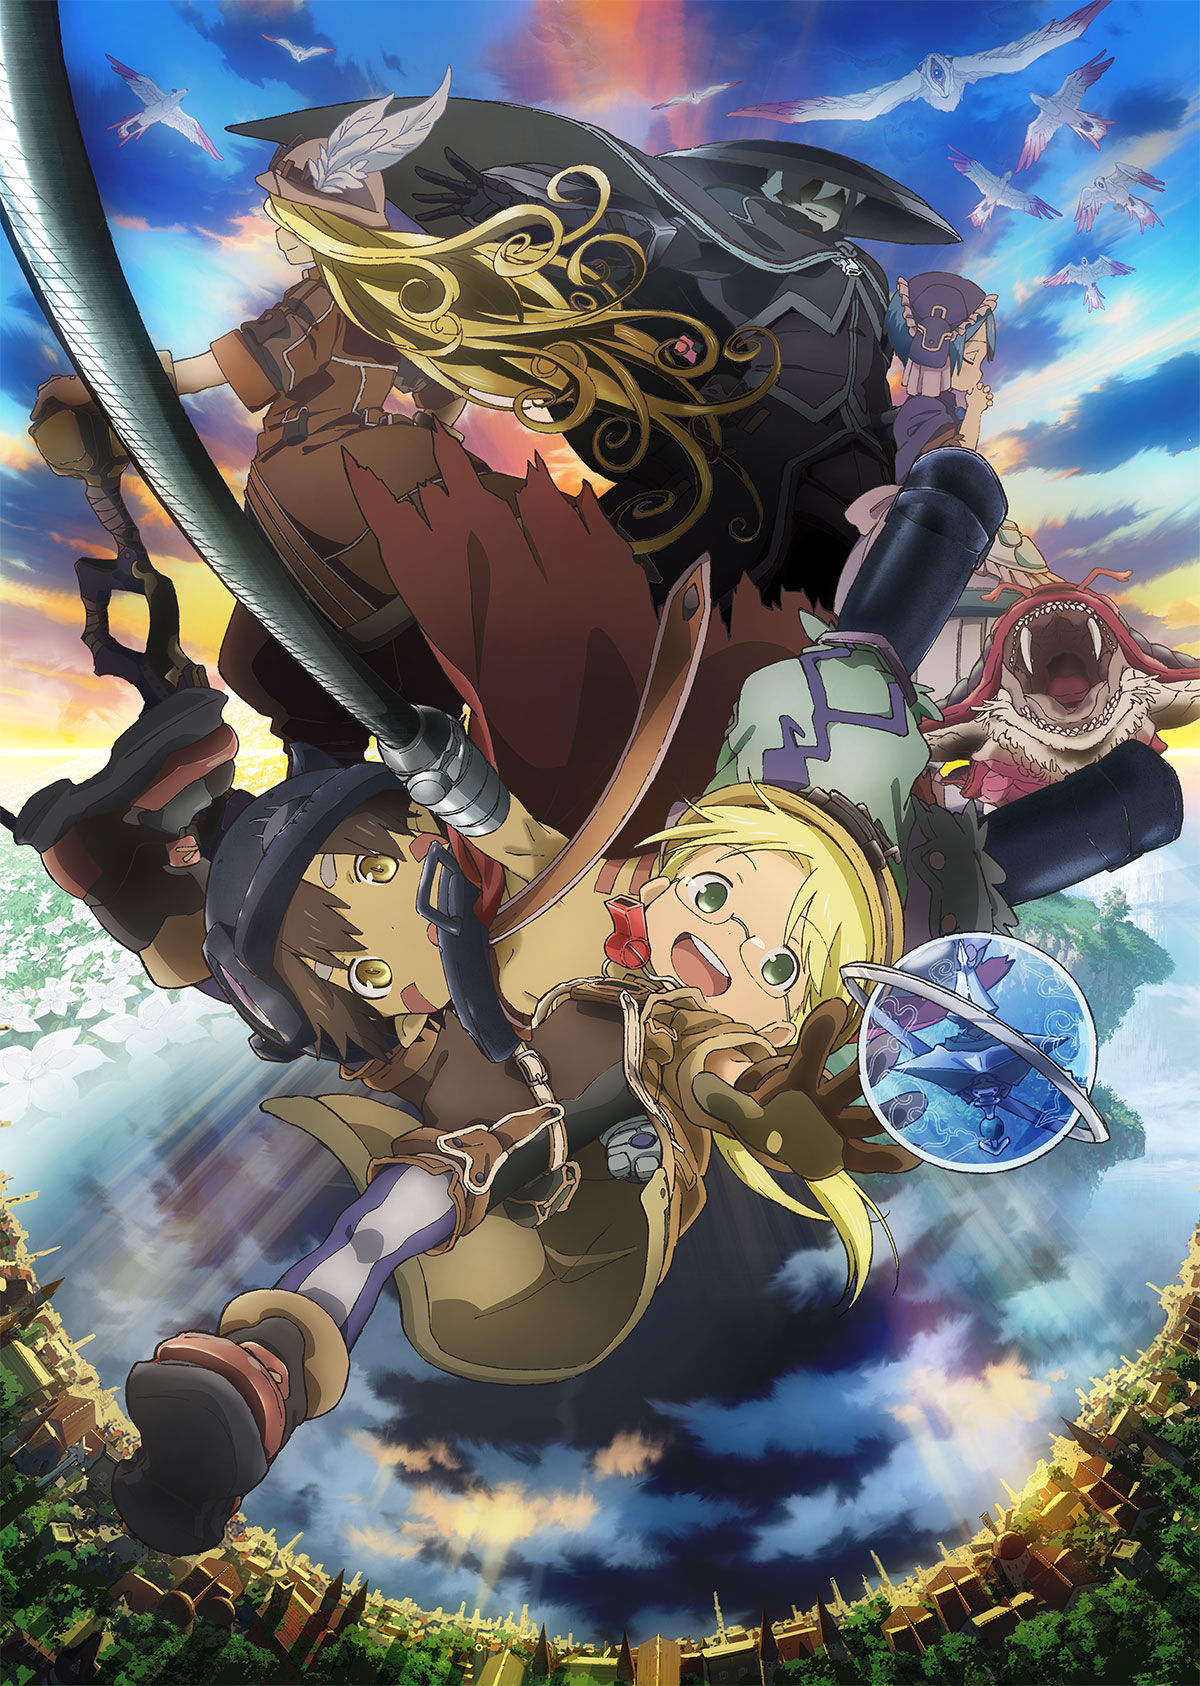 Made In Abyss film datoer